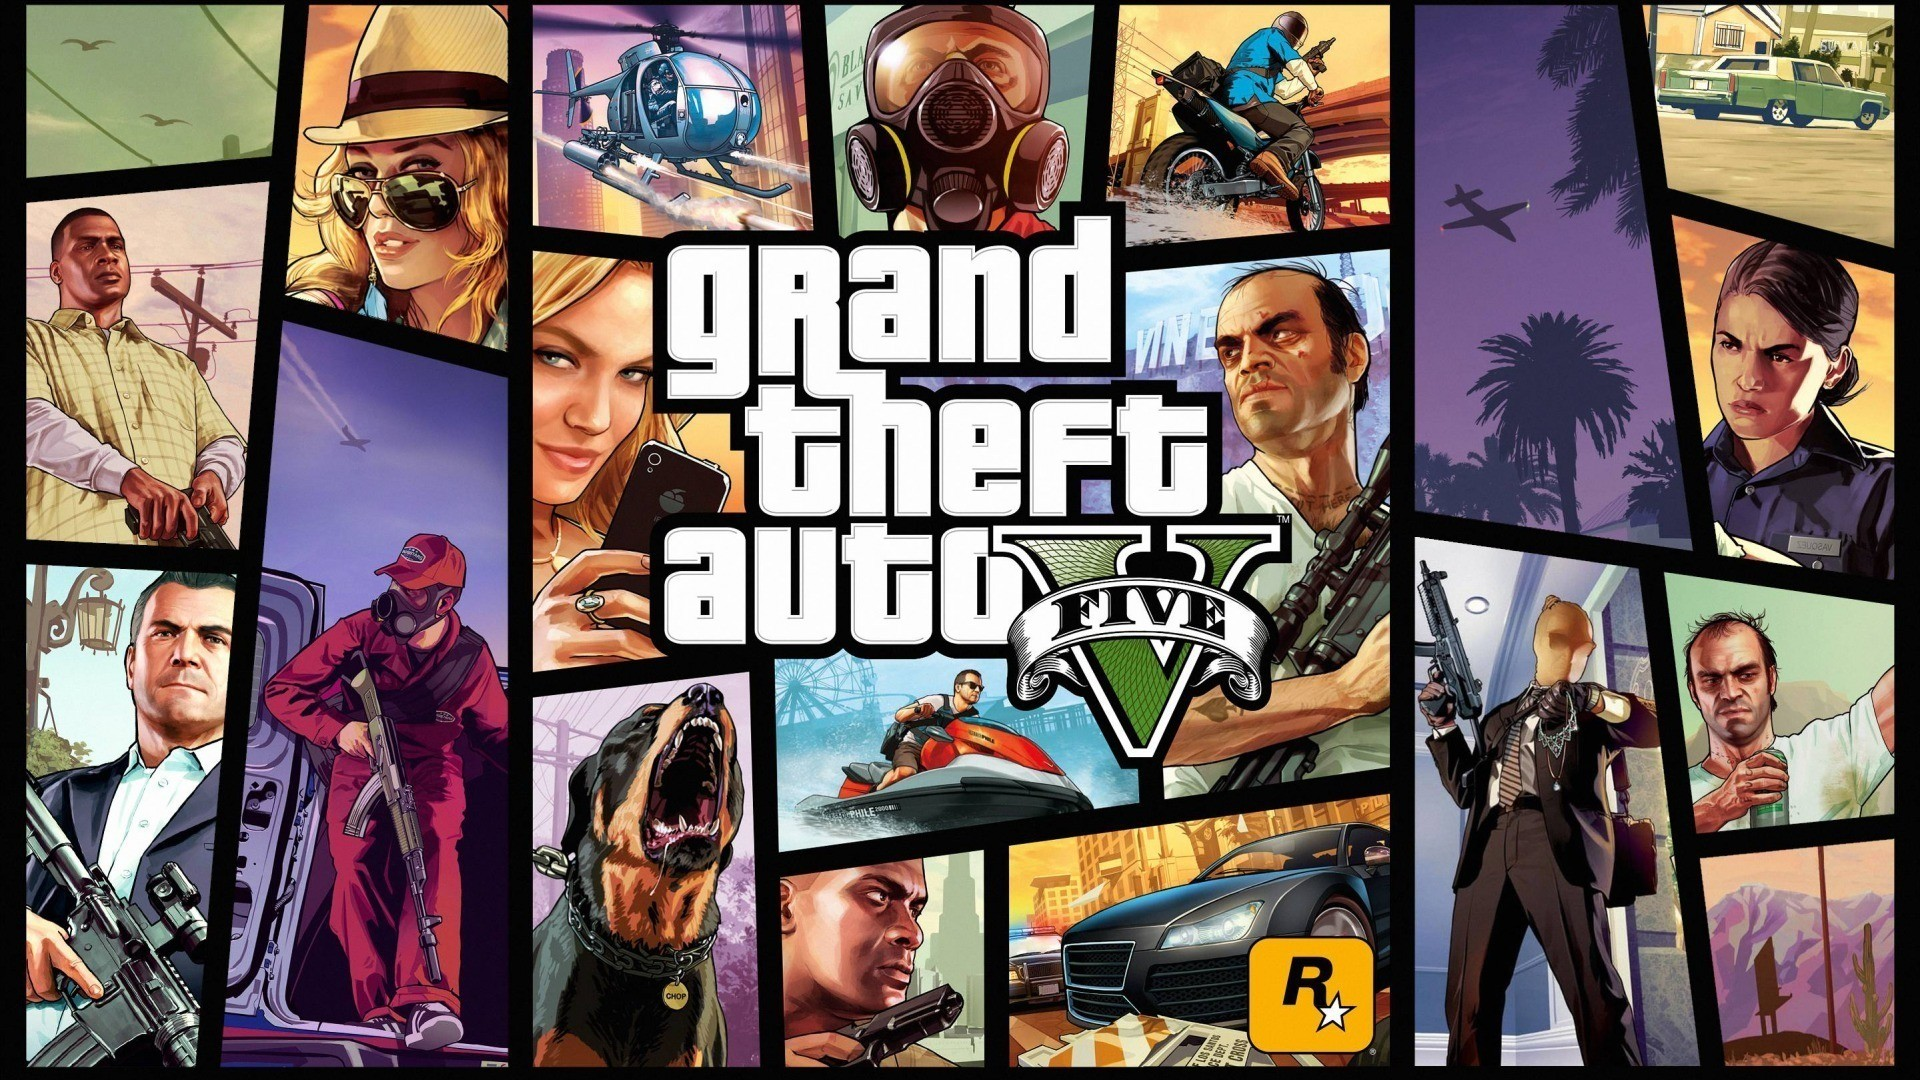 Grand Theft Auto V Wallpaper (Fanmade)HD 1980×1080 by .